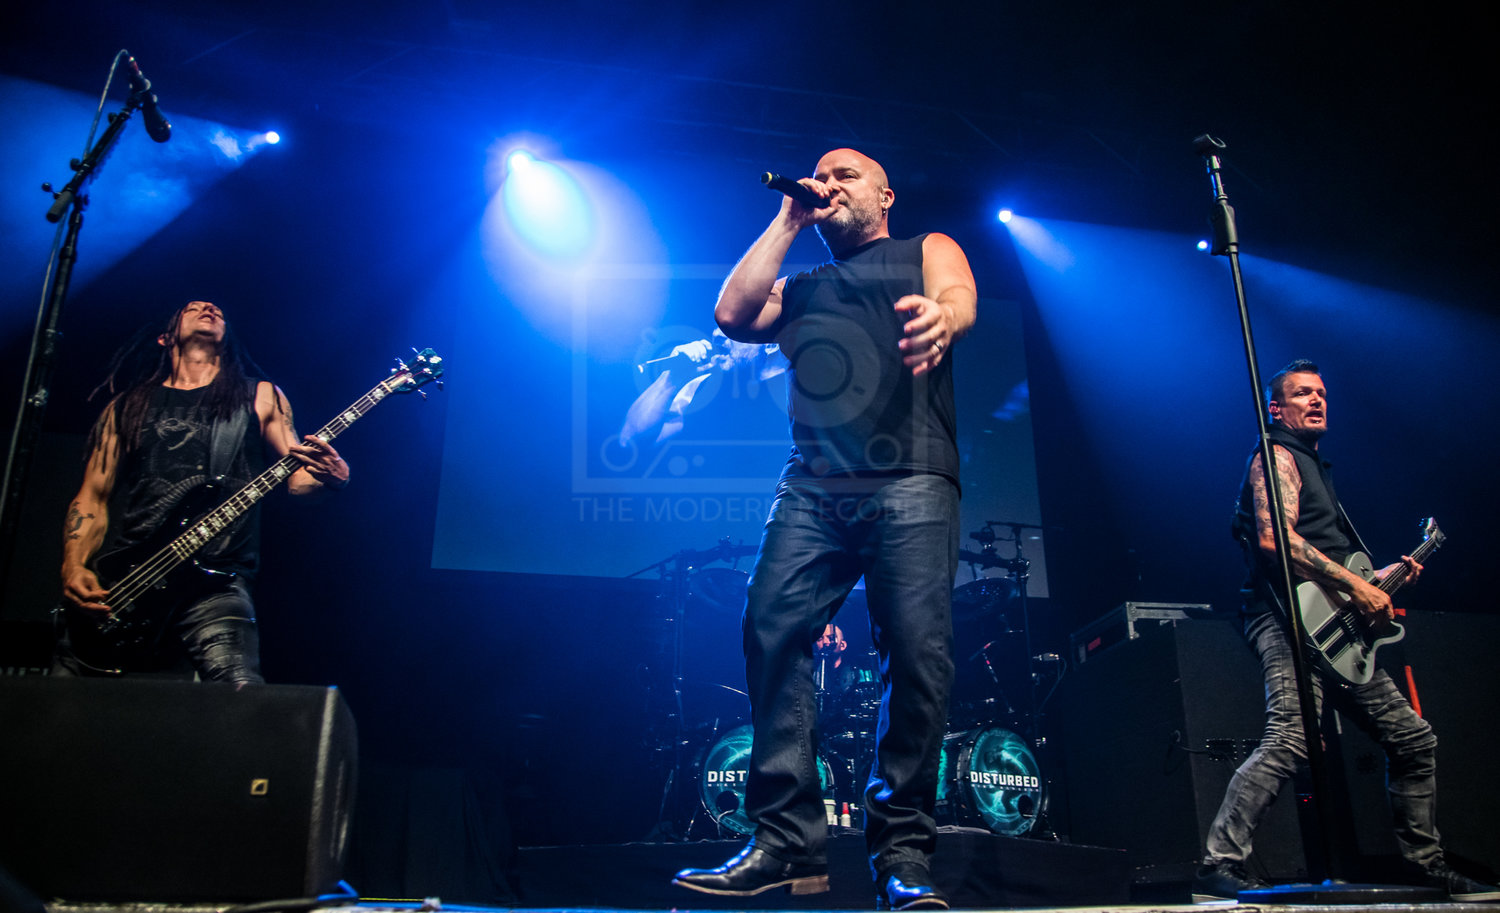 DISTURBED PERFORMING AT GLASGOW'S O2 ACADEMY - 13.05.2019  PICTURE BY: STEPHEN WILSON PHOTOGRAPHY